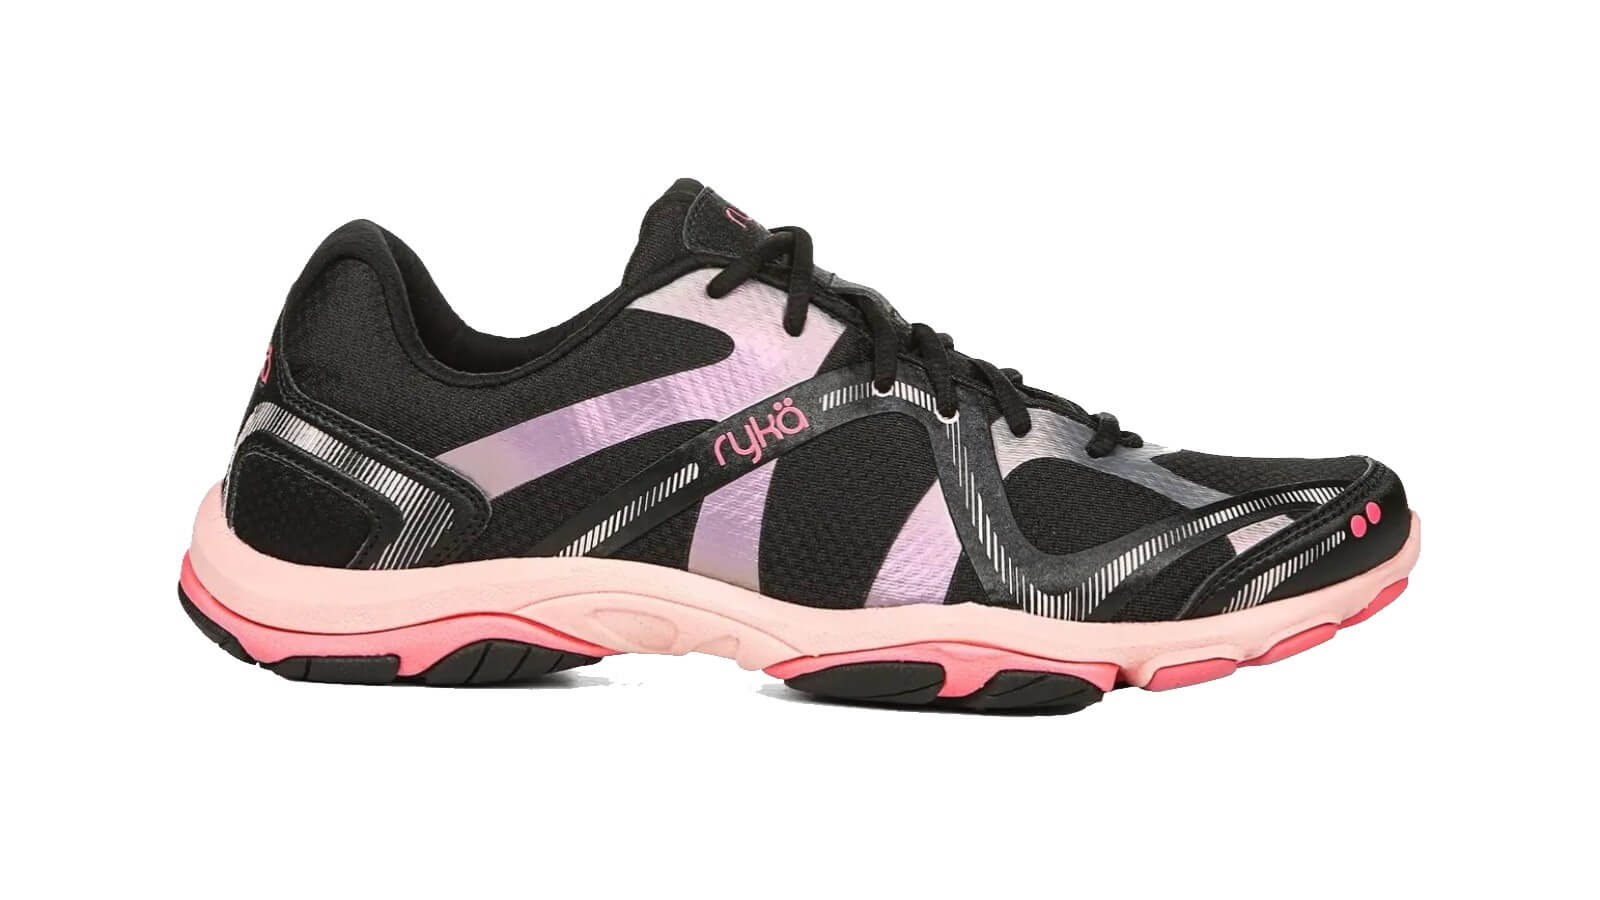 Ryka Influence pink and black fitness shoe for dance and hiit classes